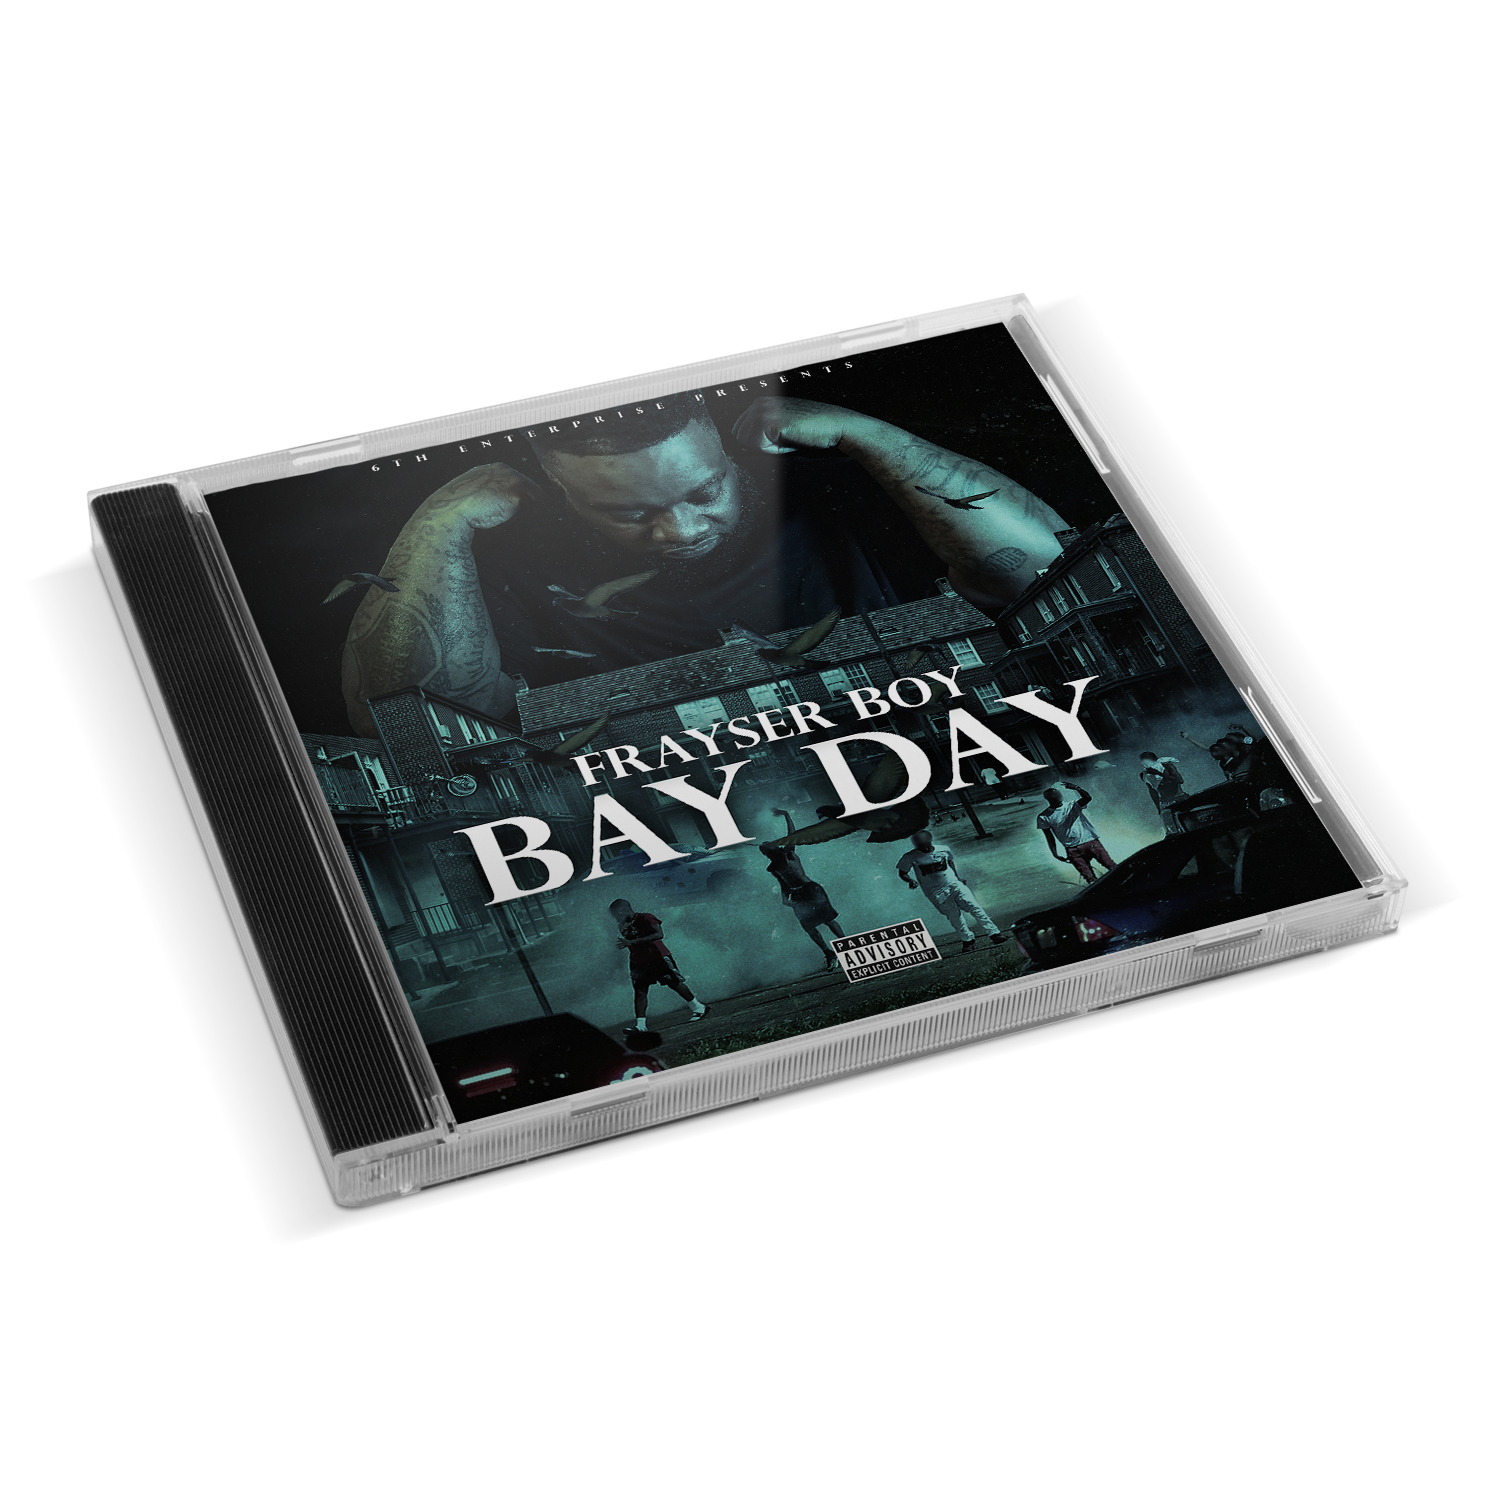 Frayser Boy - Bay Day